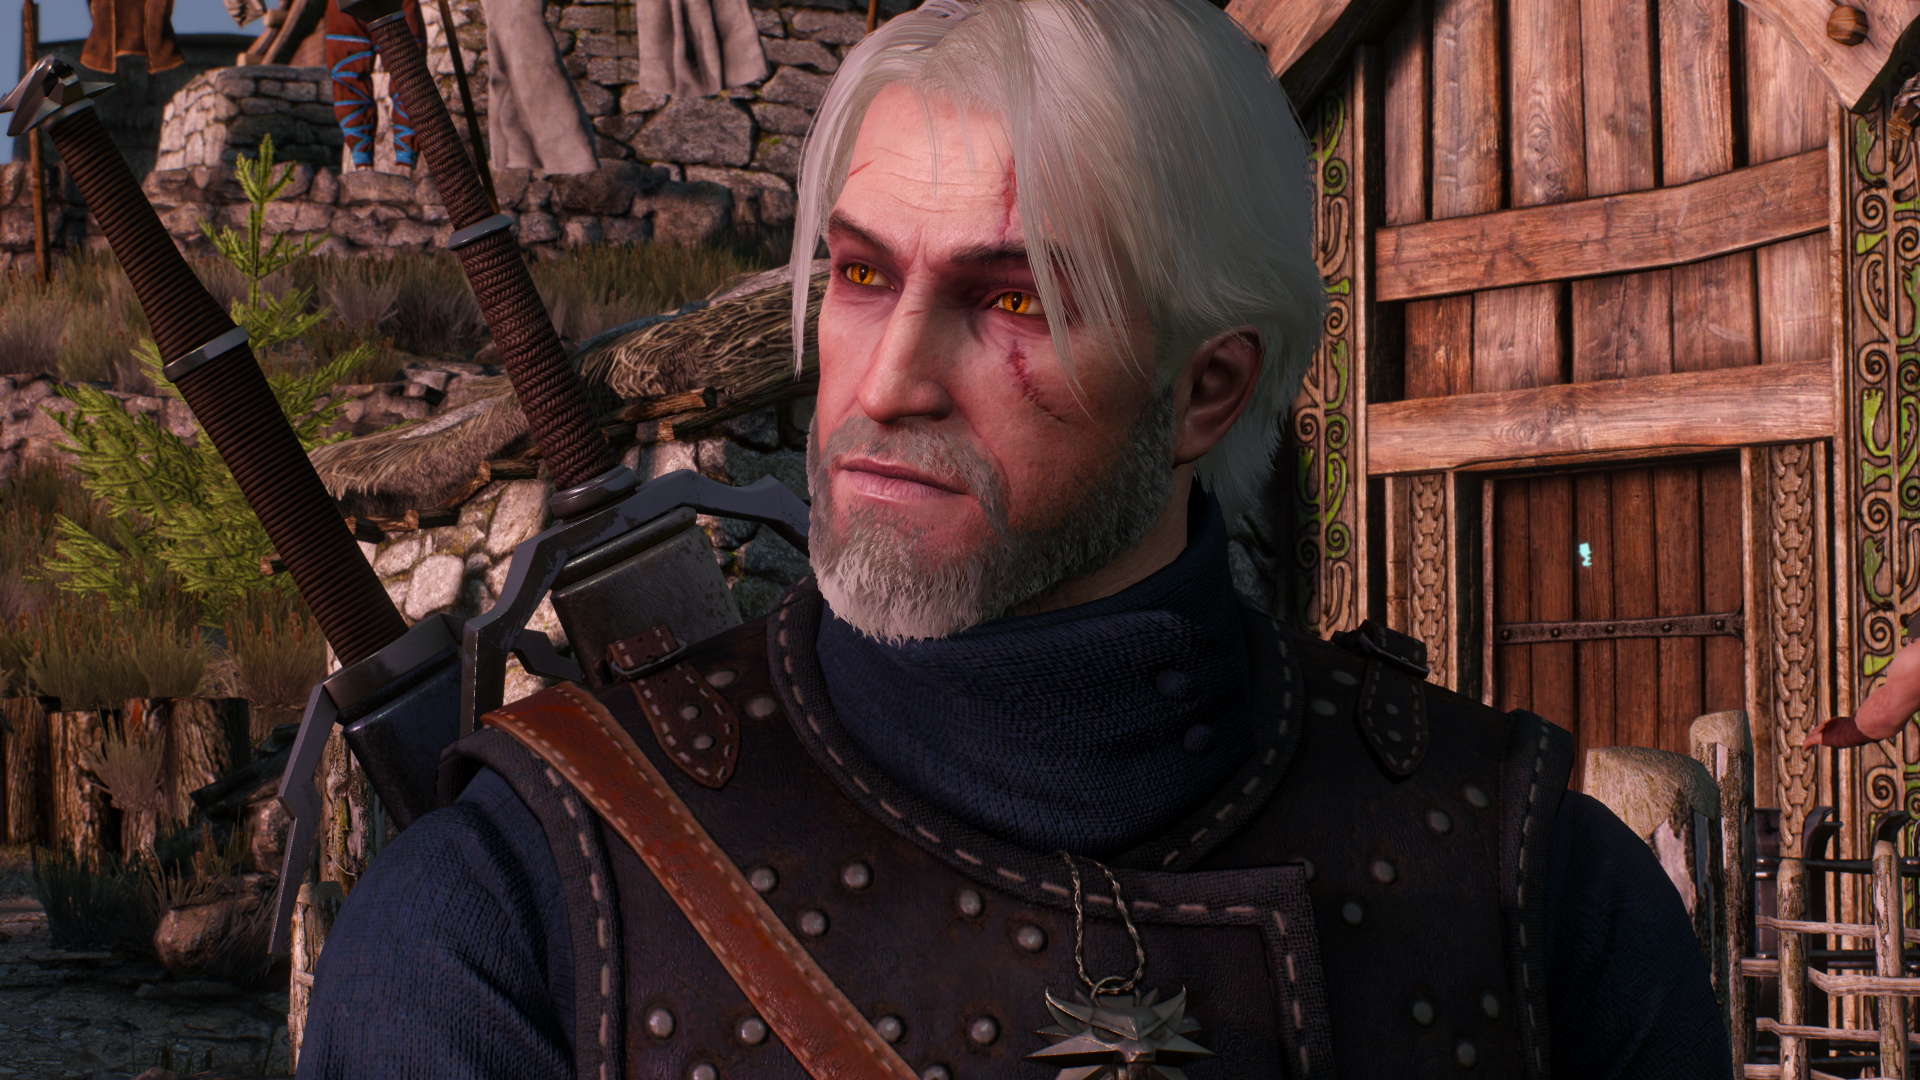 Let S Settle This Geralt Of Rivia Beard Or Clean Shaven